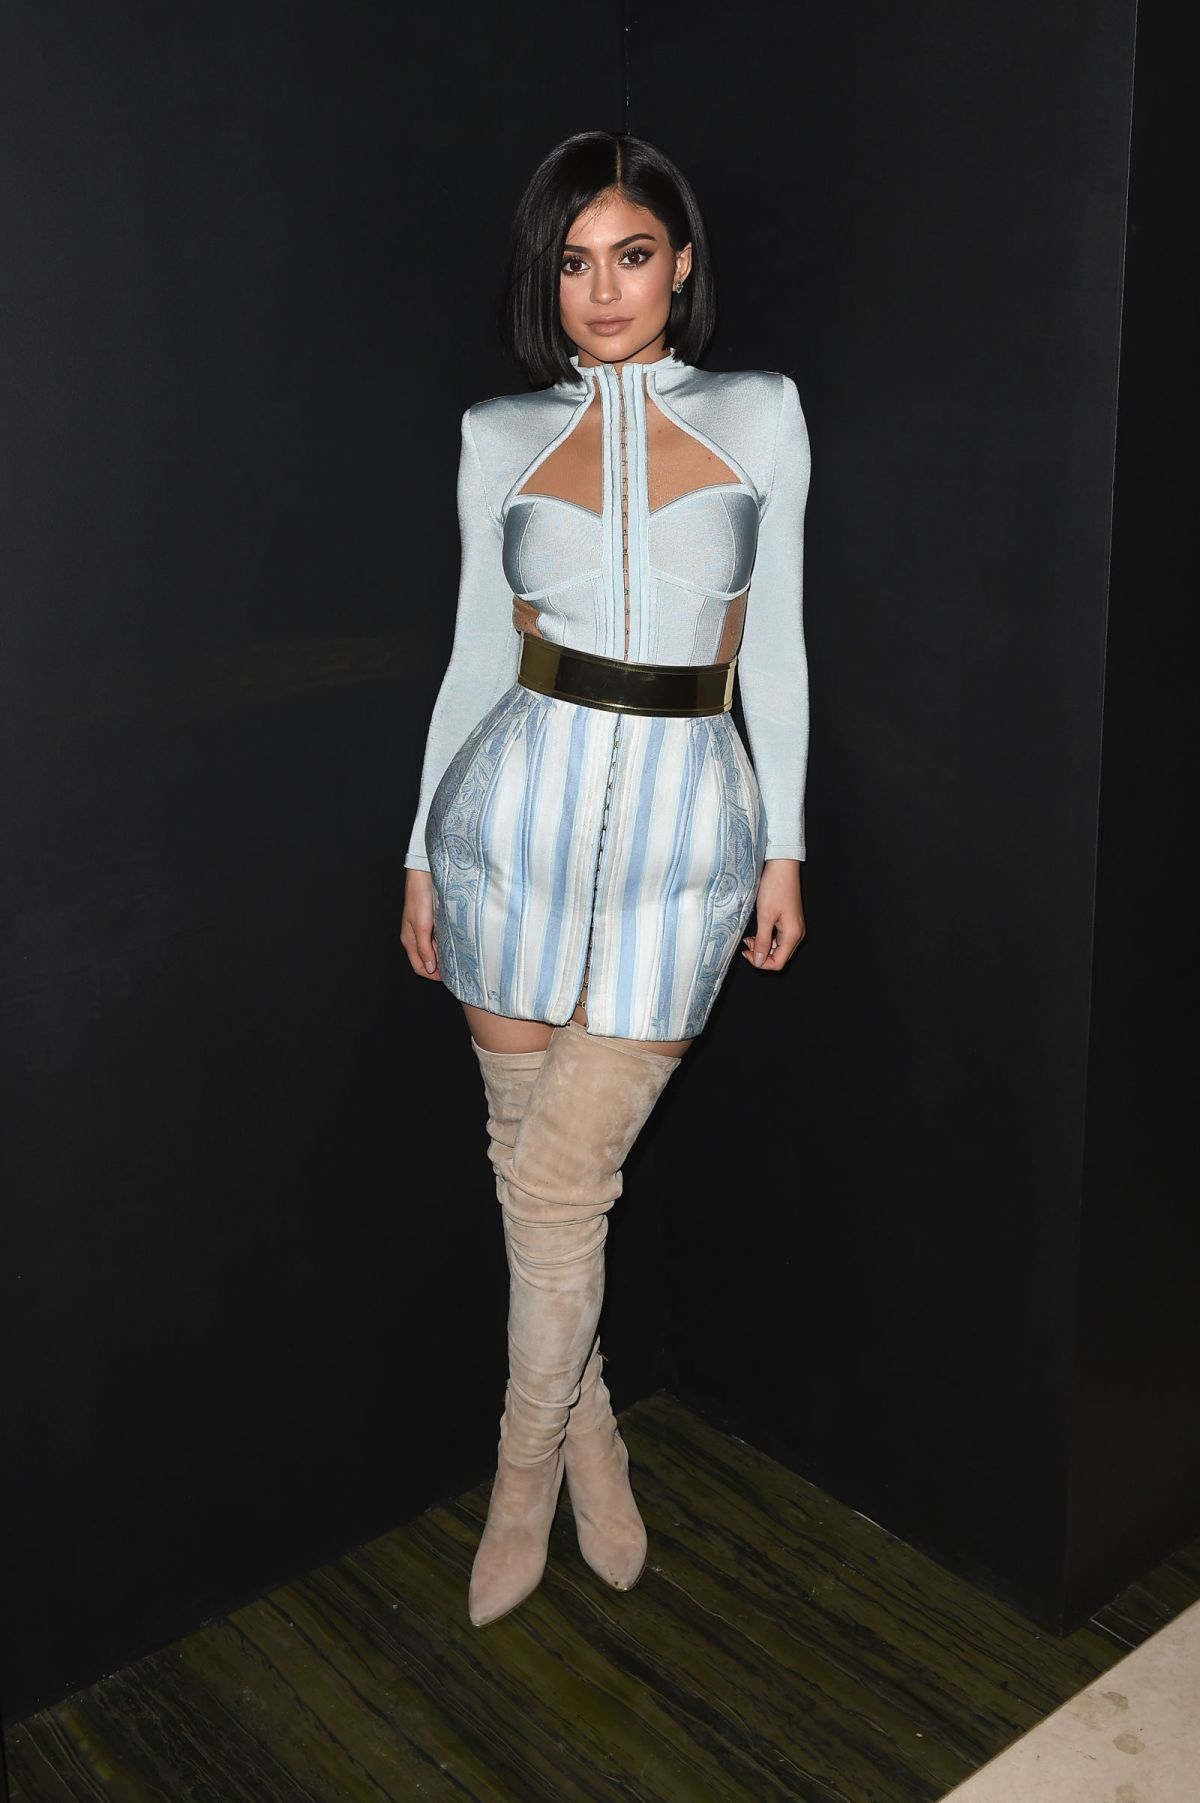 Kylie Jenner At Met Gala After Party In New York 05 02